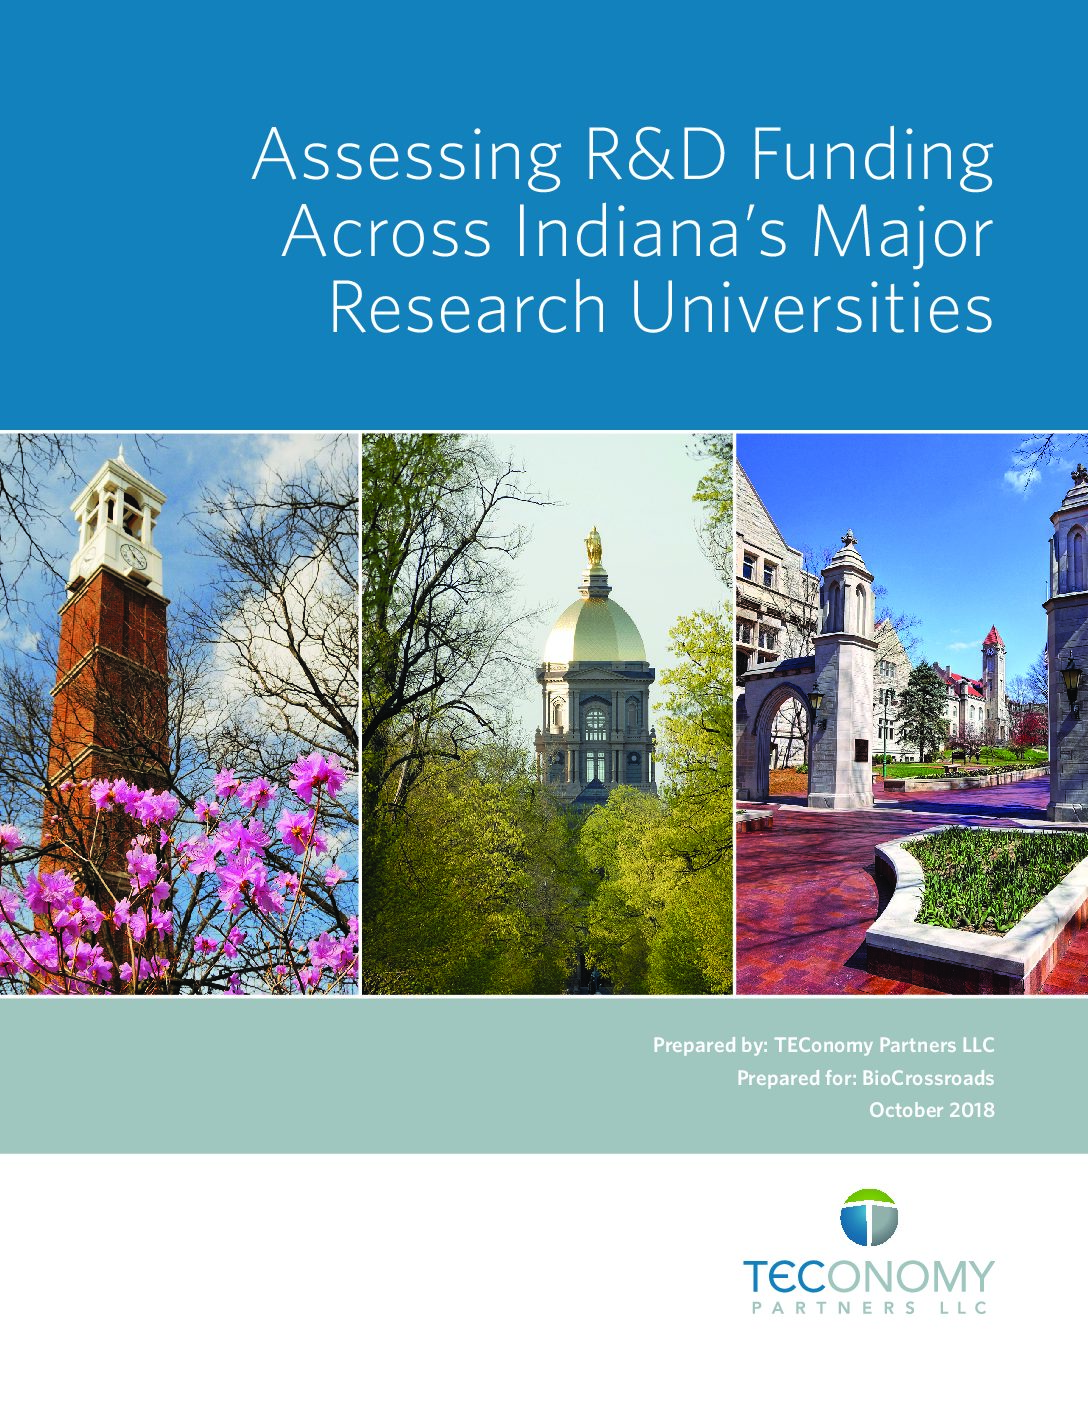 Indiana's major research institutions' R&D dollars outpace nation in some areas, need improvement in others according to new study